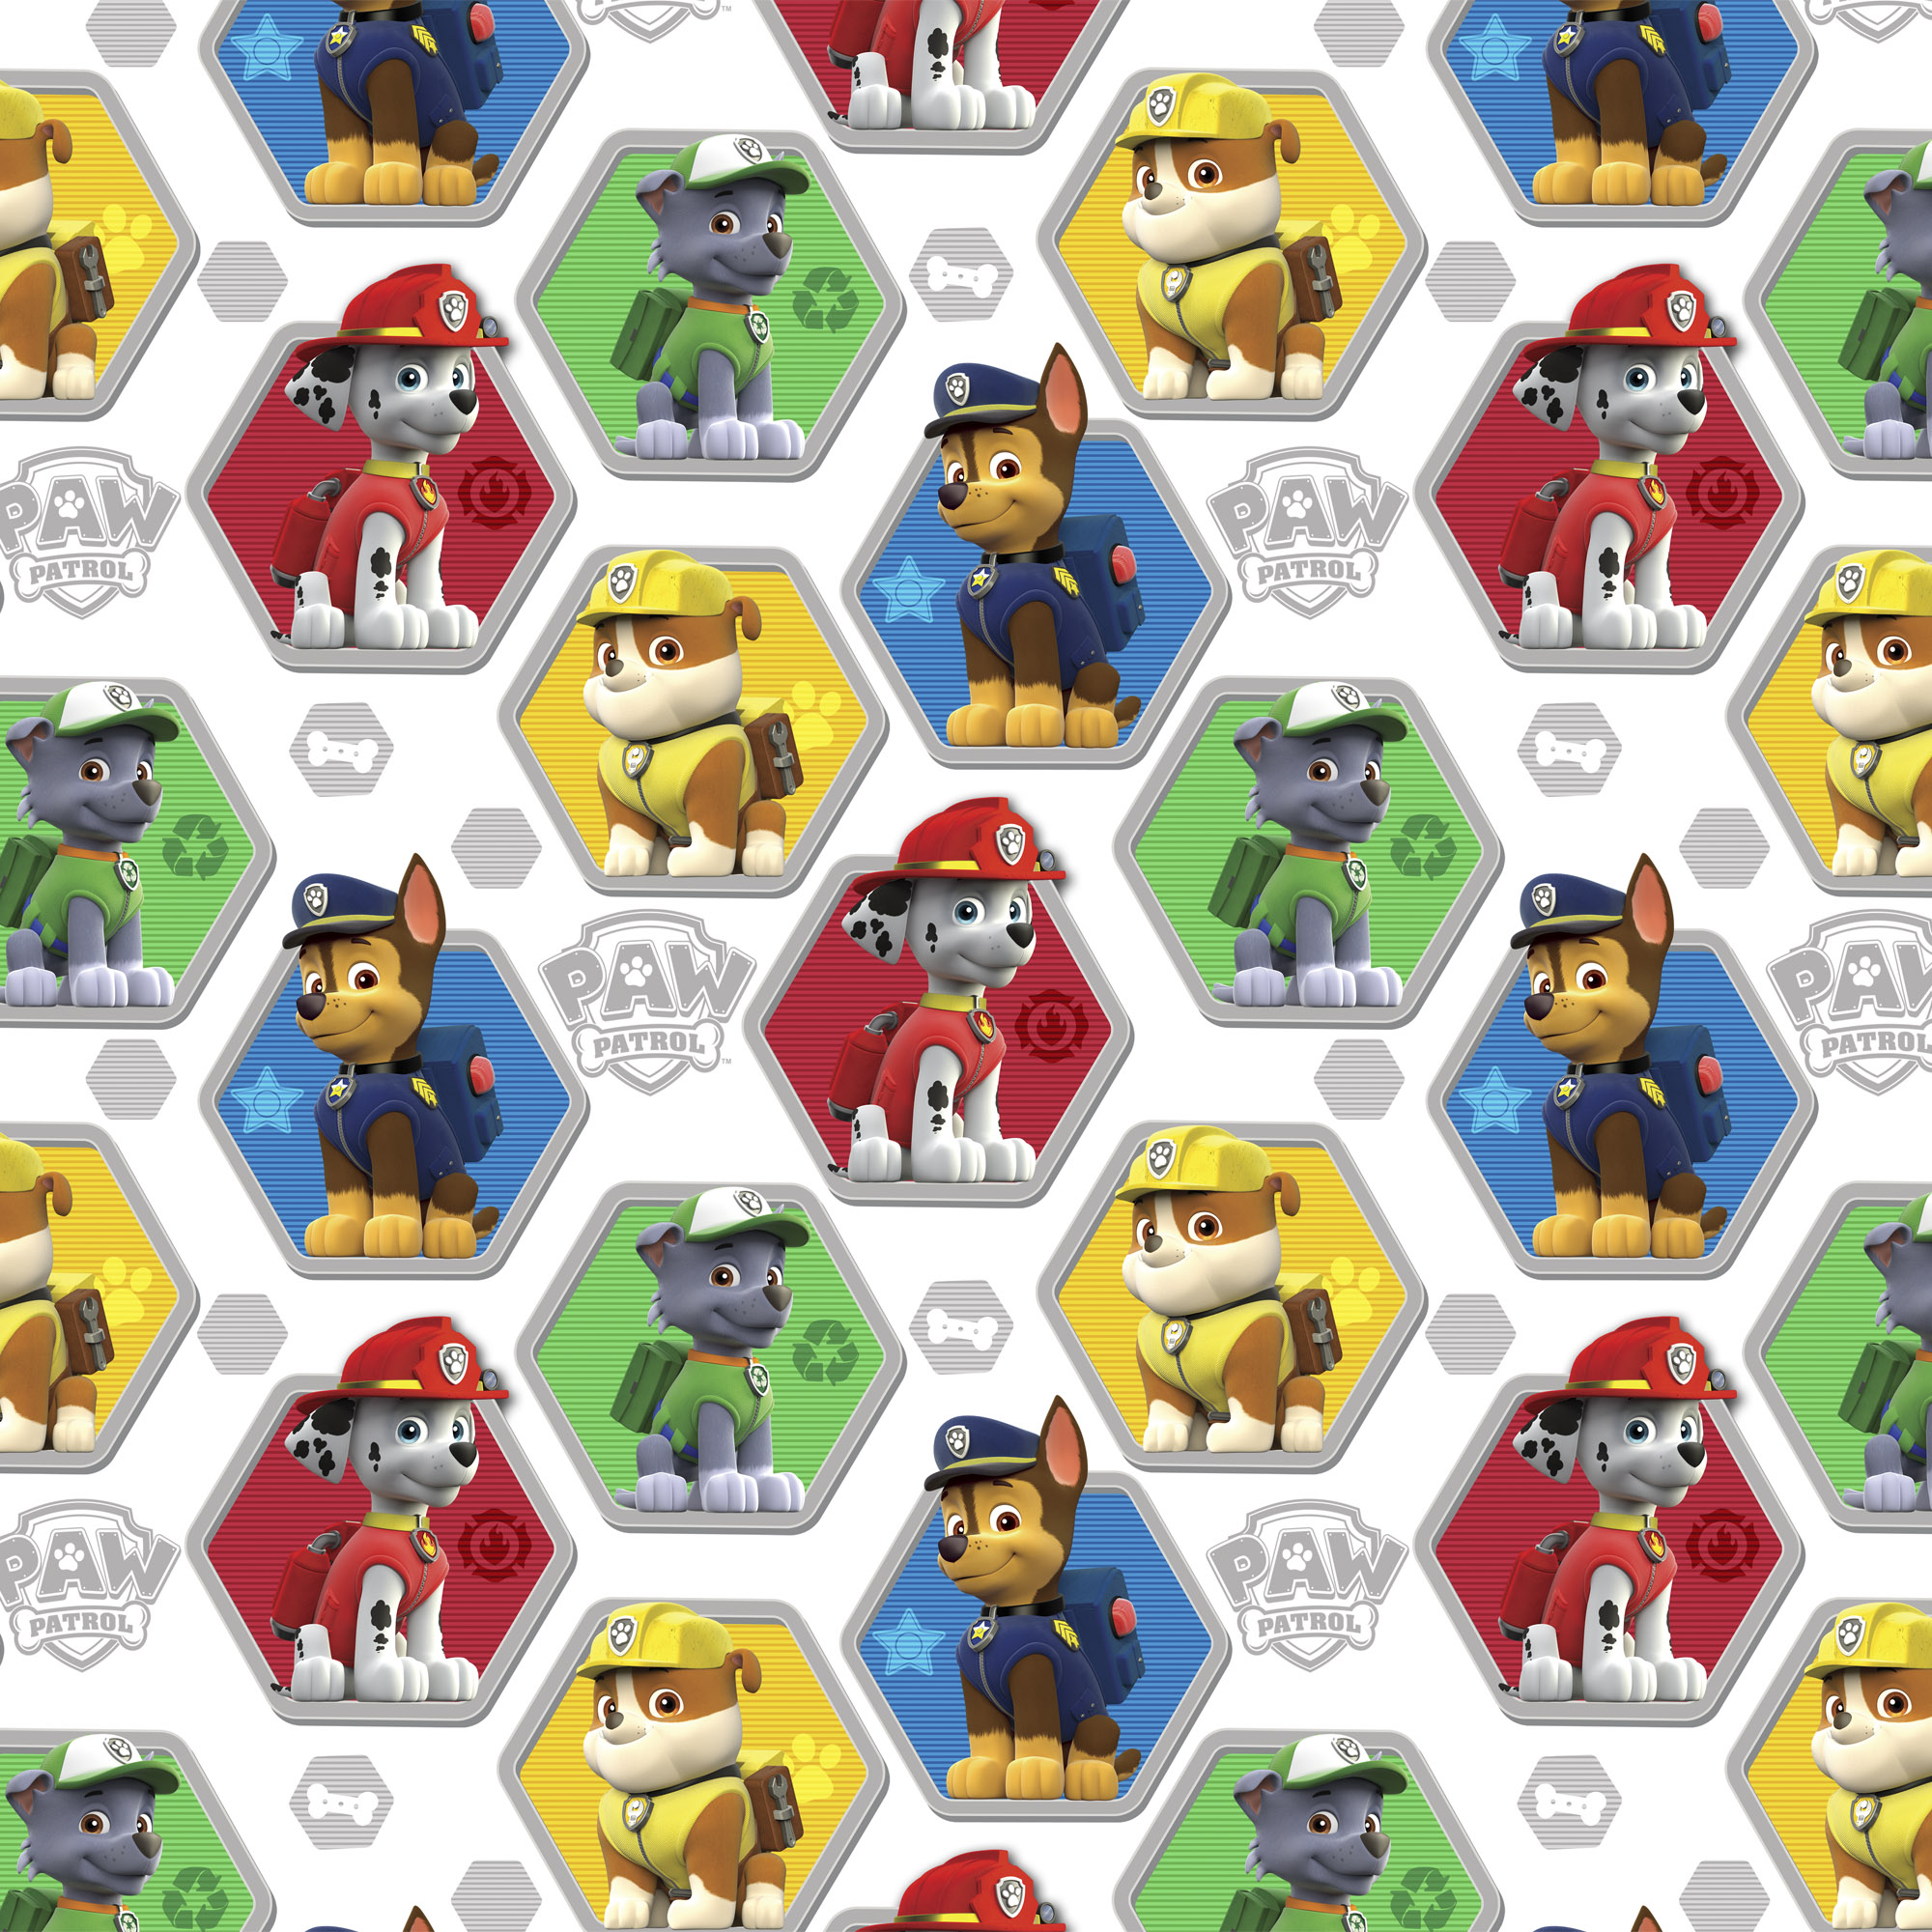 "David Textiles Cotton Pre-Cut 54"" x 44"" Paw Patrol Fabric, 1 Each"